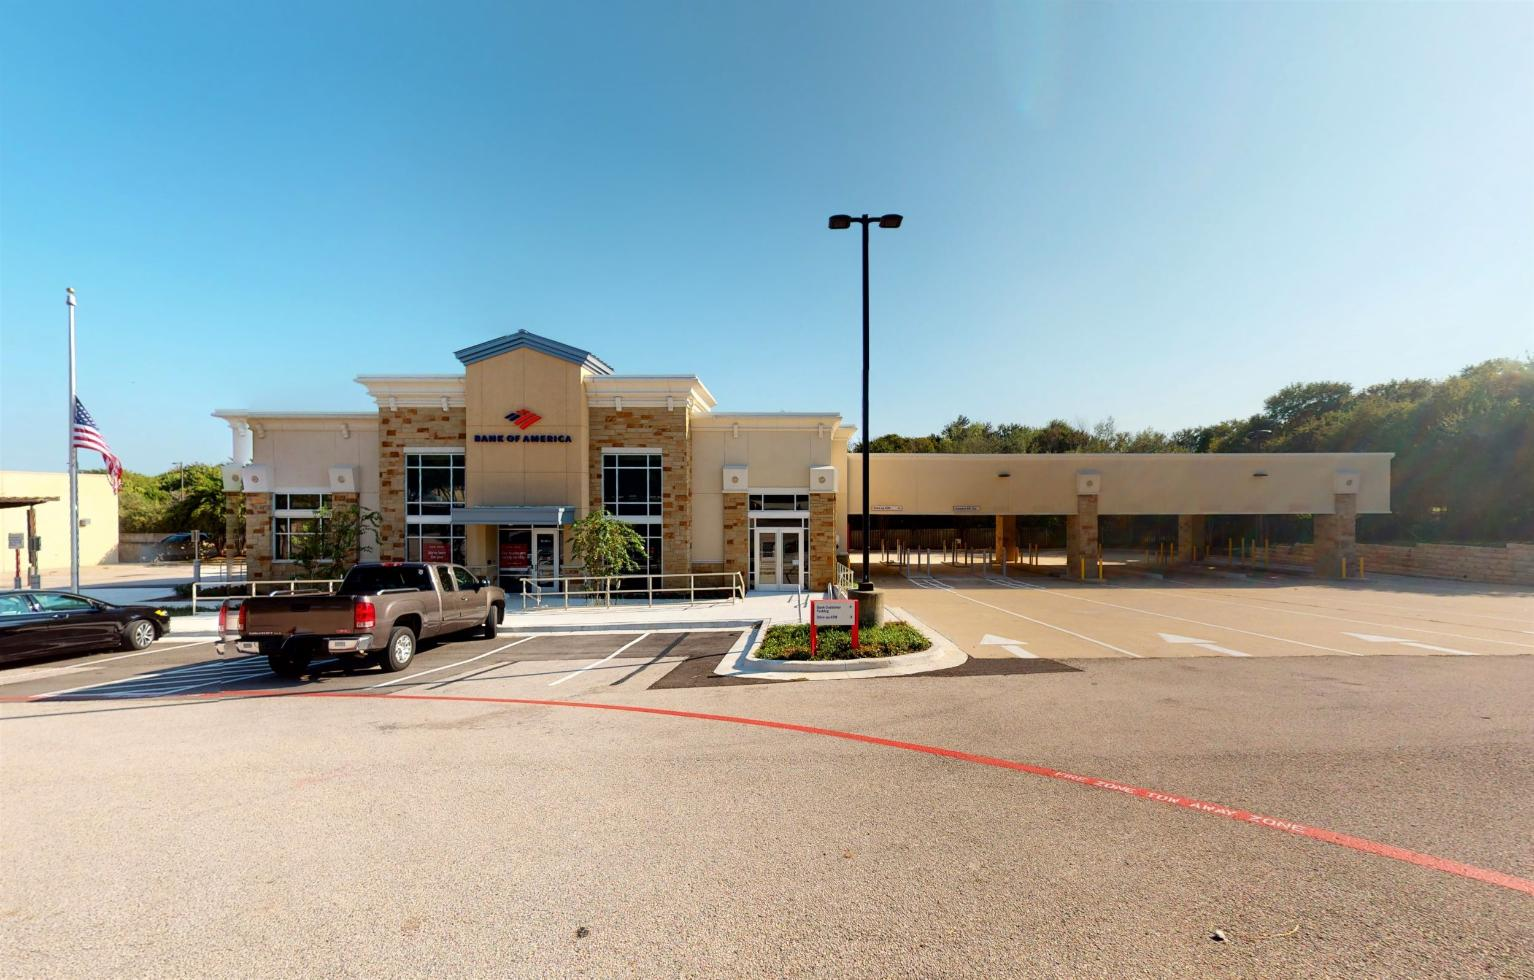 Bank of America financial center with drive-thru ATM | 6317 Bee Caves Rd STE 100, Austin, TX 78746